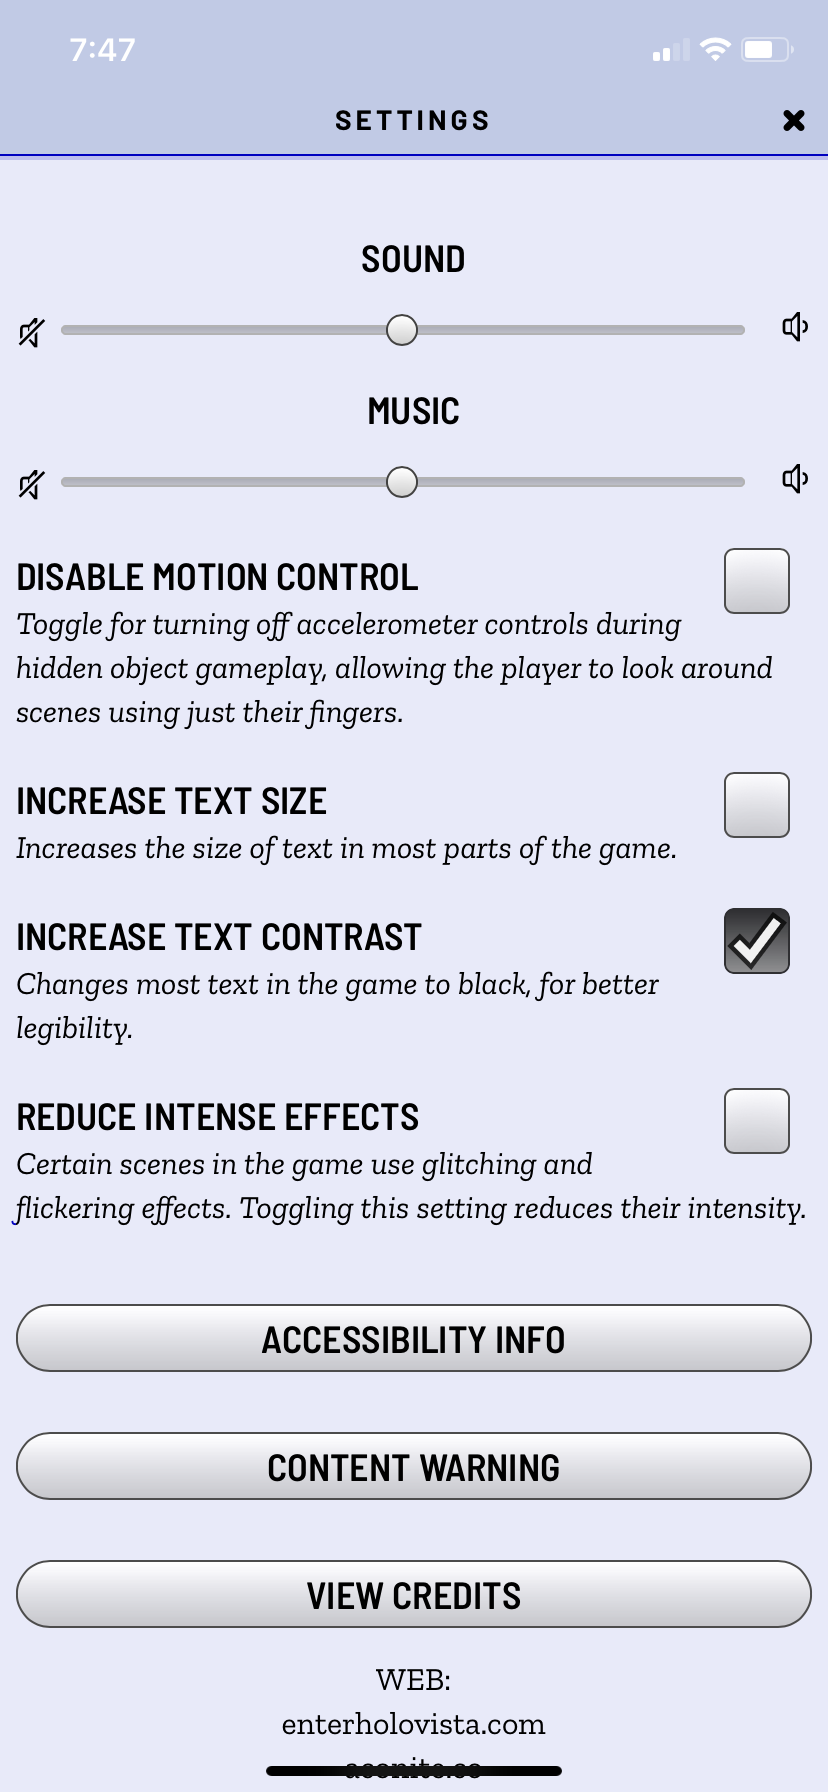 A visual representation of the in-game settings, and the impact of turning on increased contrast. You can see the text color has changed to black for most text.